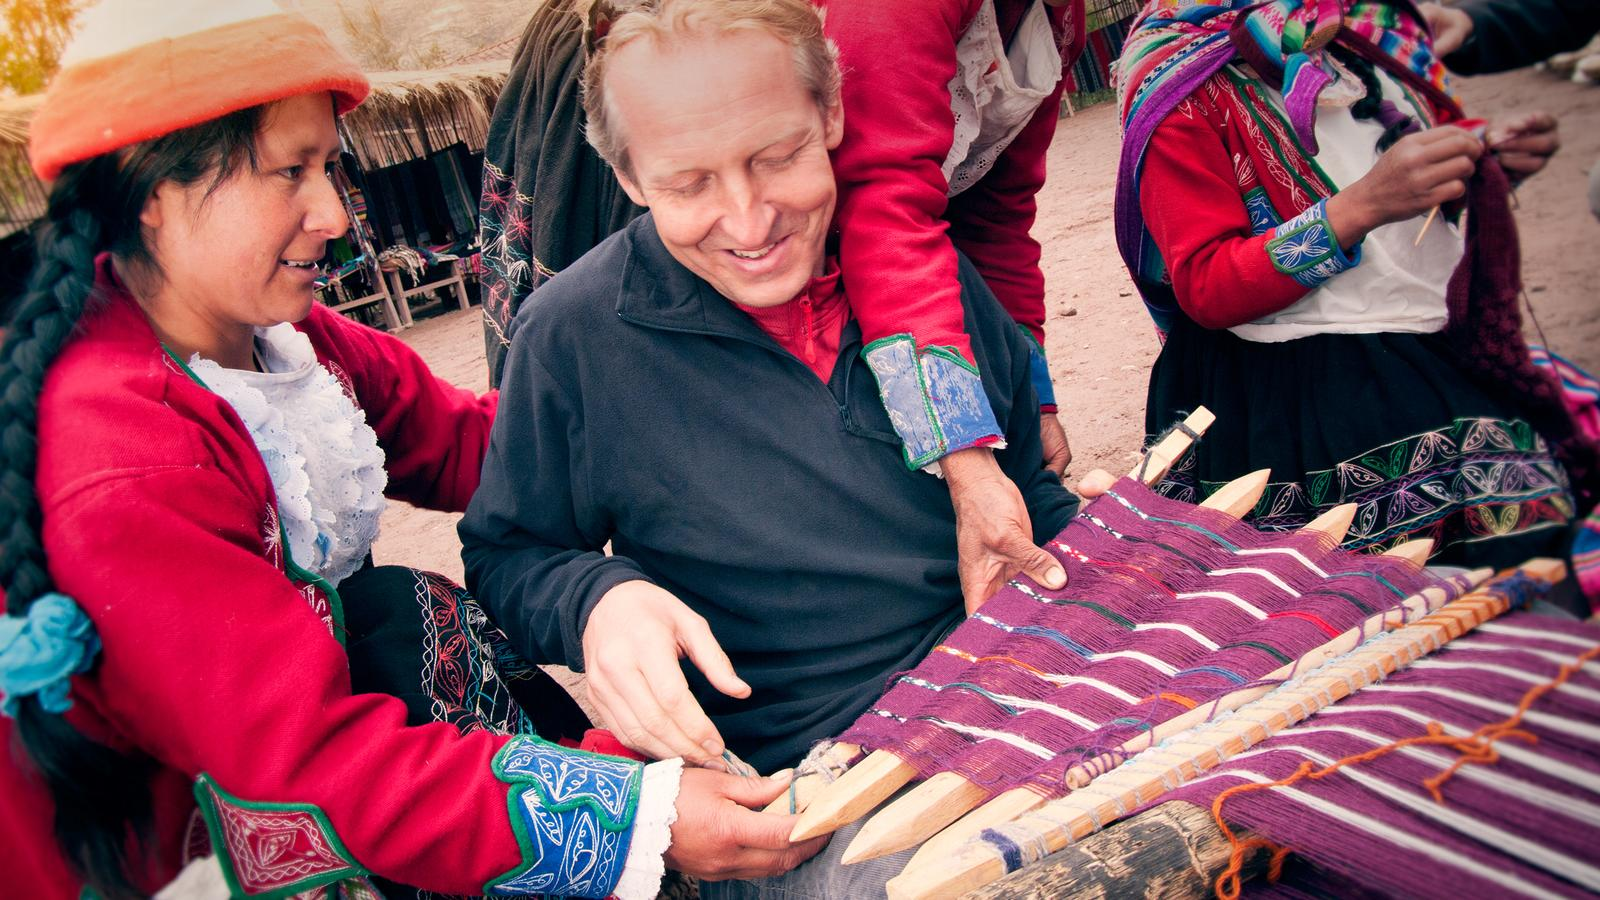 A traveller learning about how traditional weaving works from a local in Peru